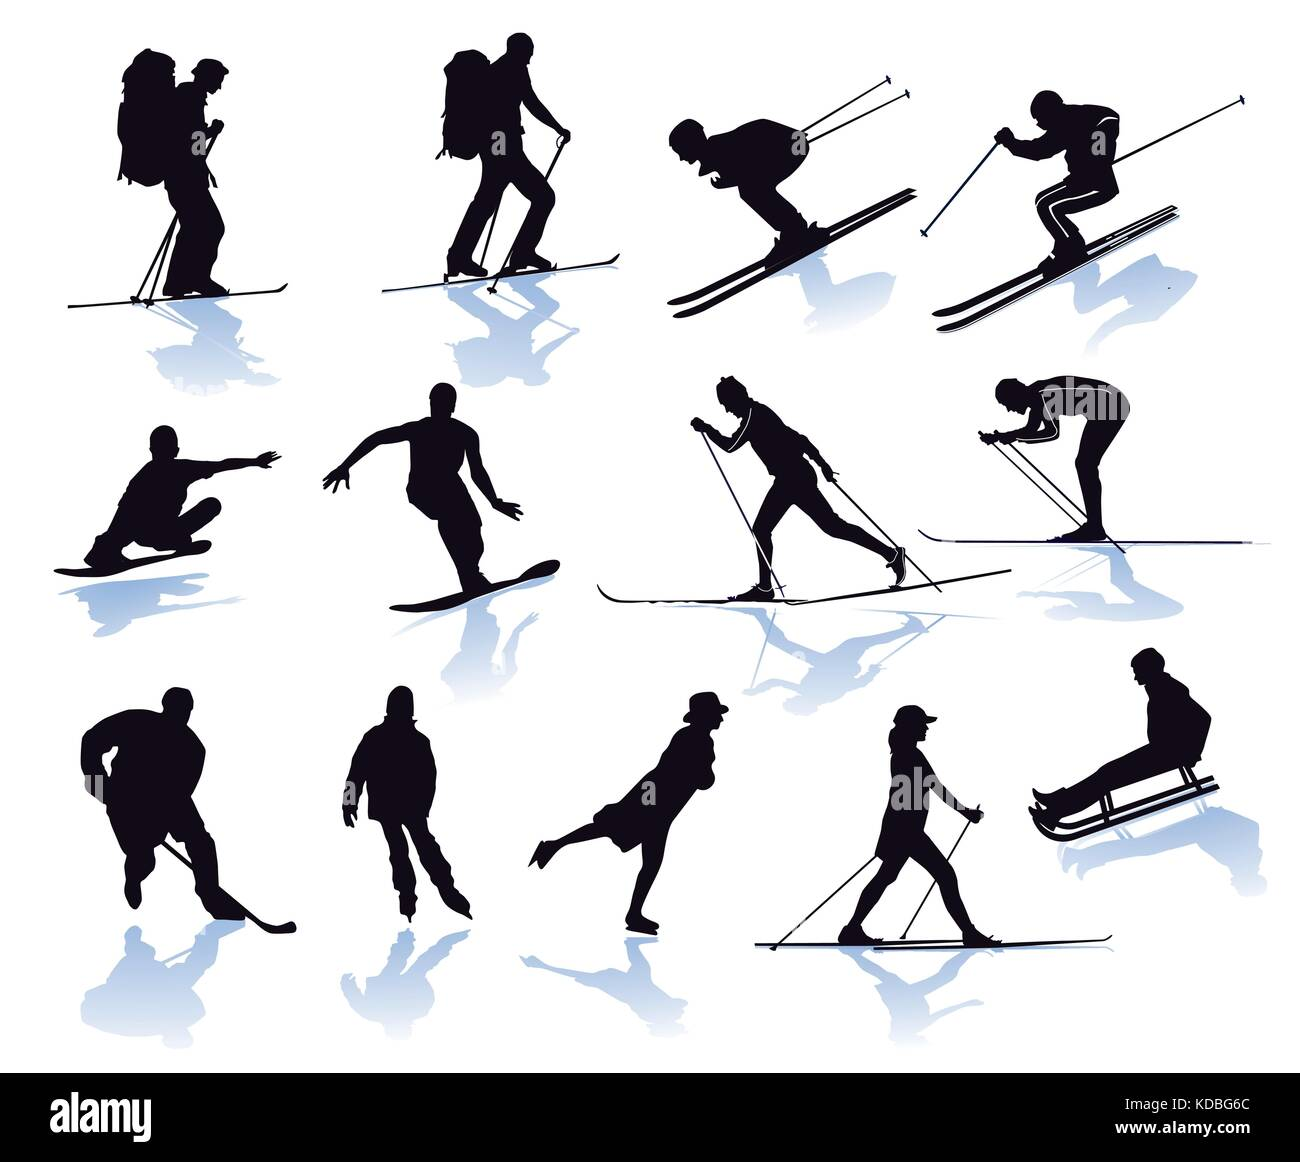 Winter sports, skier, snowboarder, skiing - Stock Image